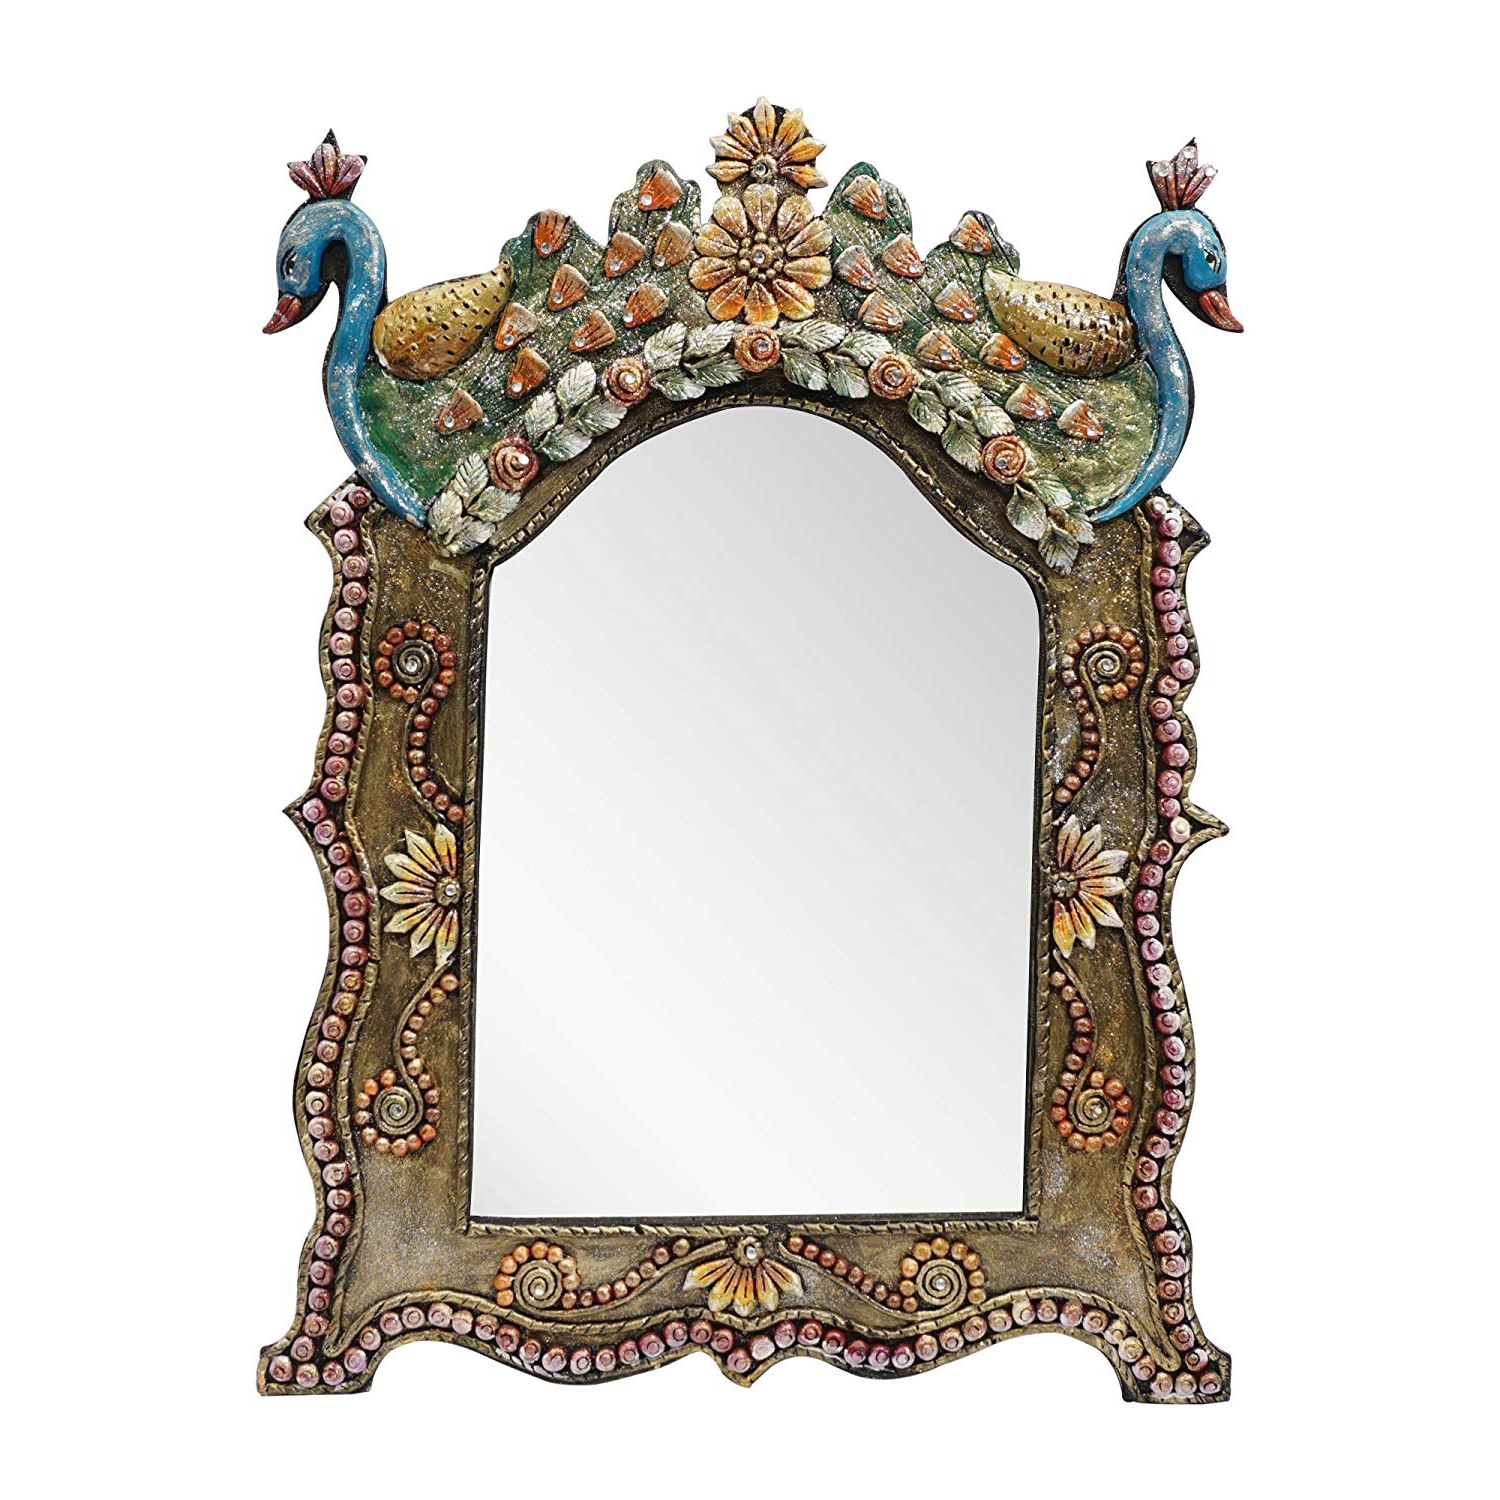 Hand Painted Wall Mirrors Within Current Amazon: 999Store Wooden Hand Crafted Handmade Painted Decorative (Gallery 3 of 20)